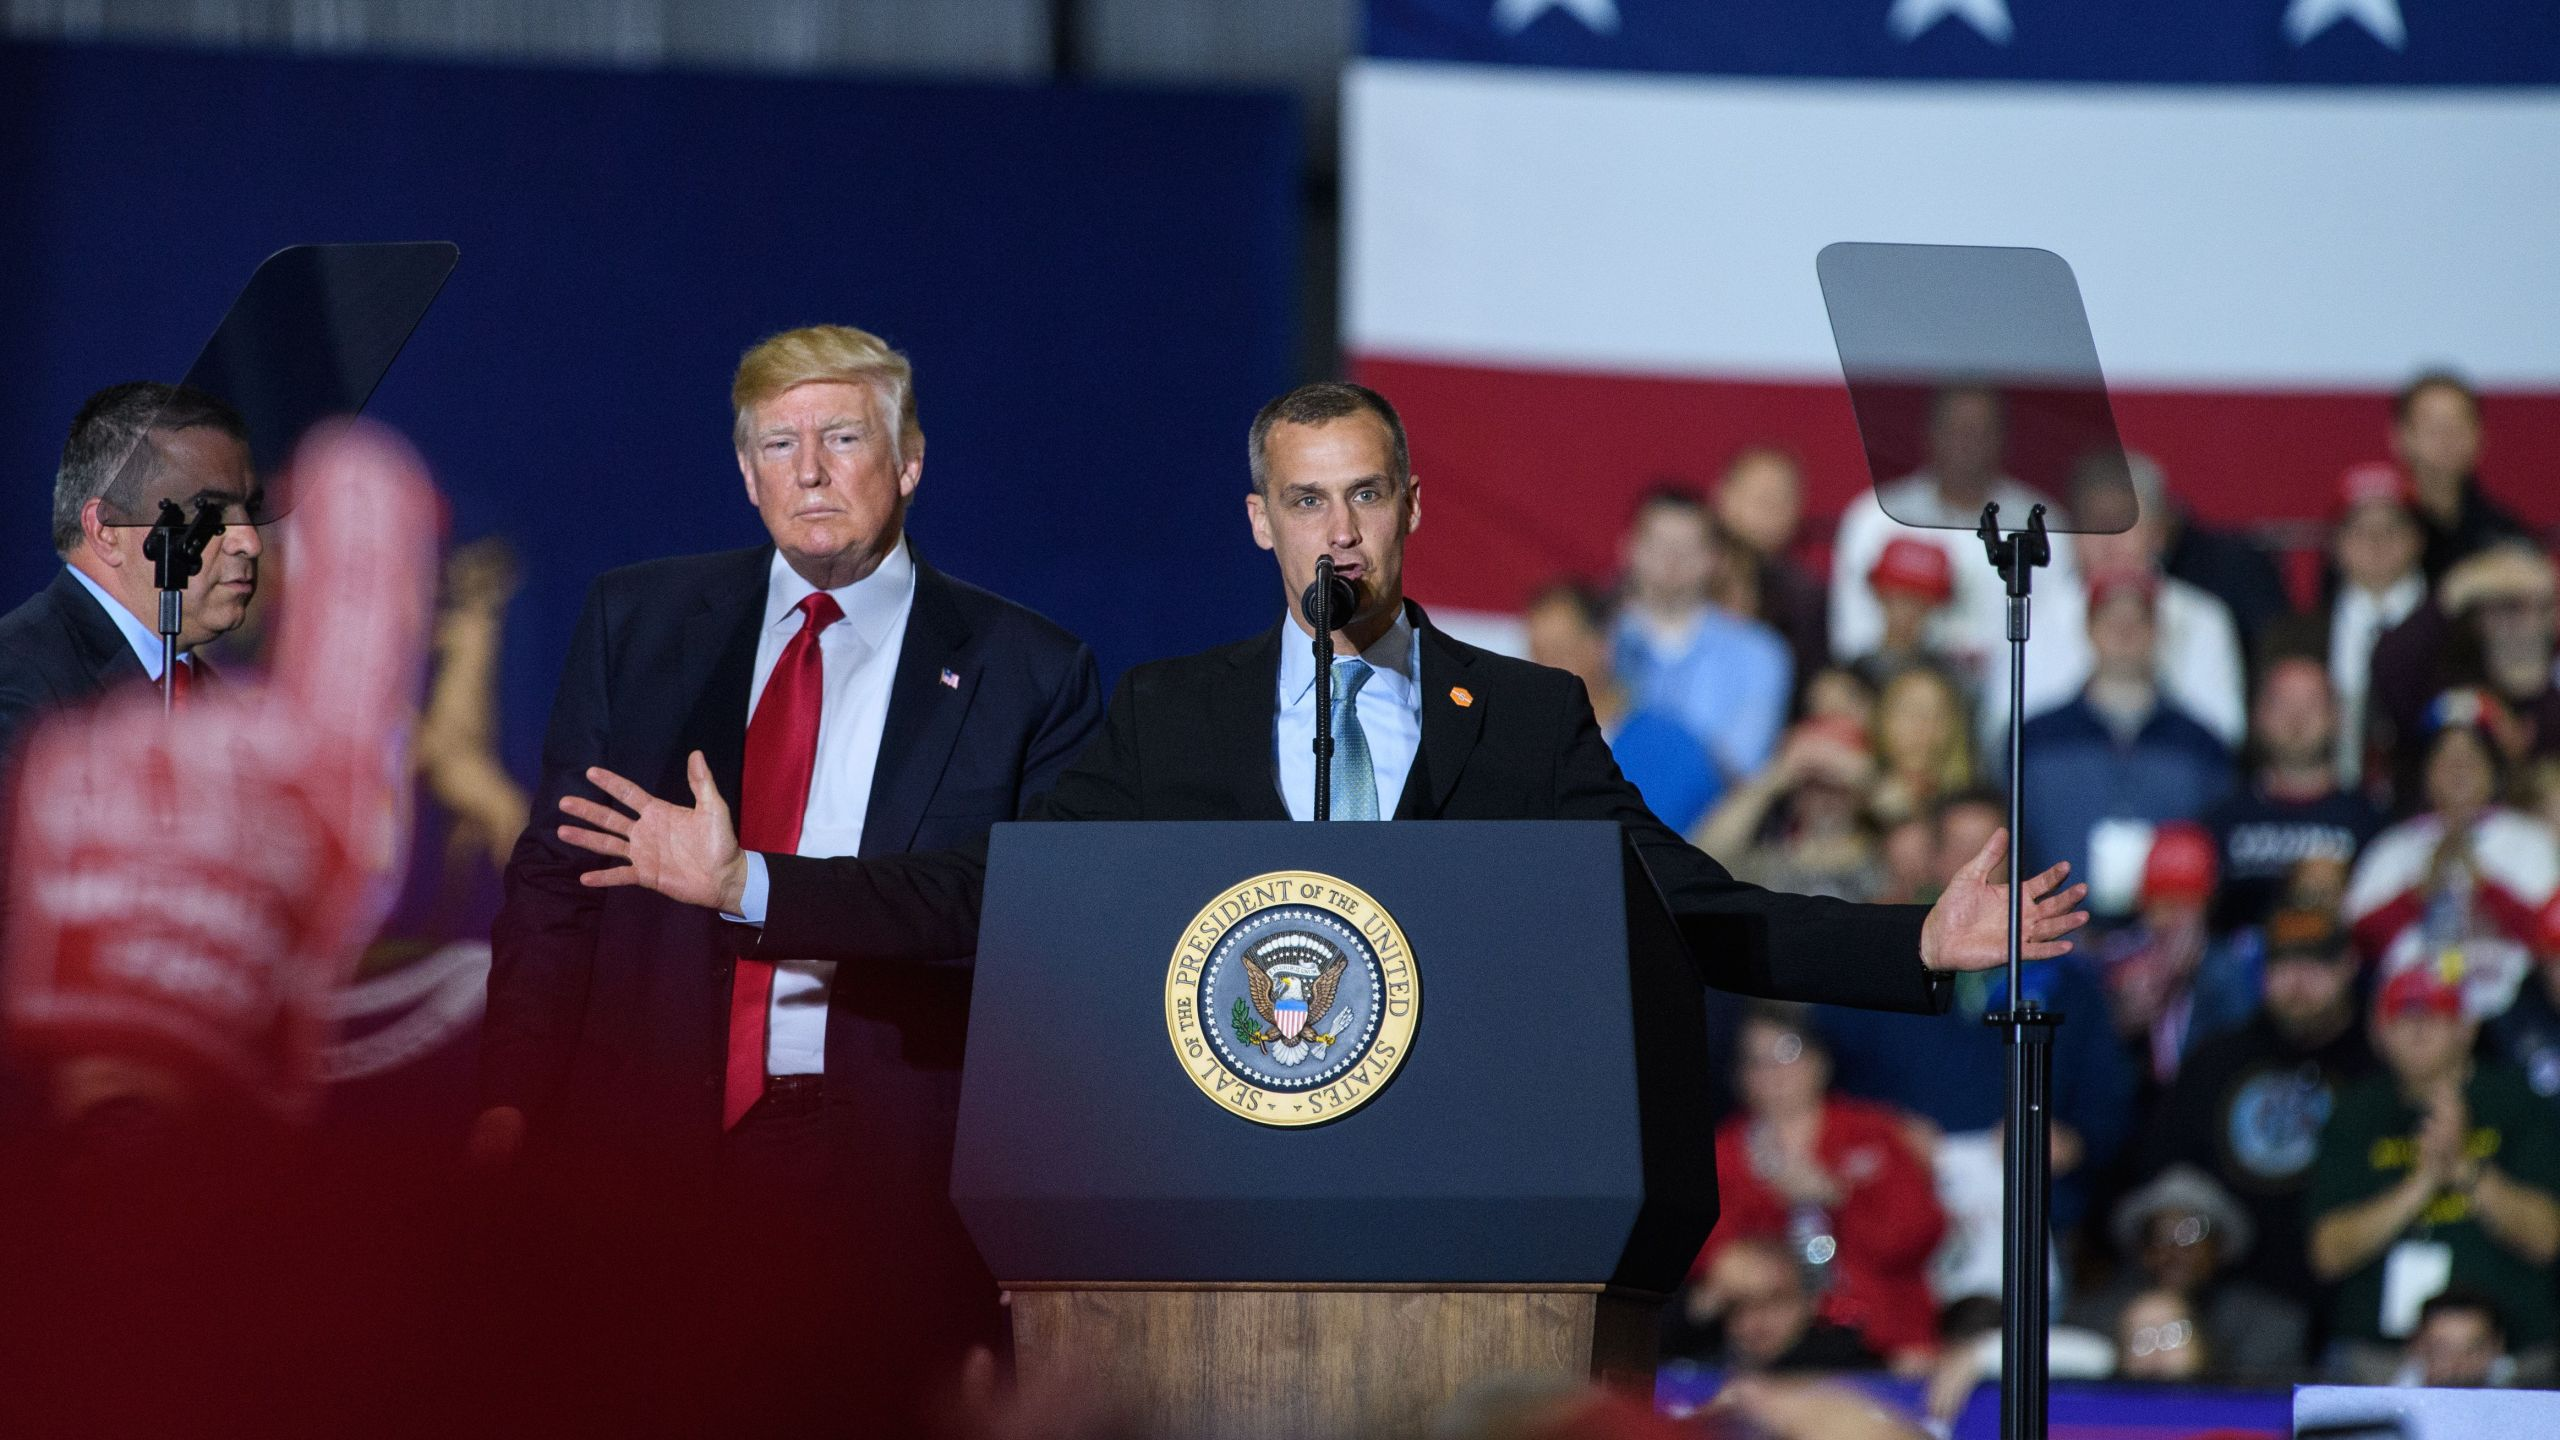 Former Trump Campaign manager Corey Lewandowski speaks as Donald Trump looks on during a rally at Total Sports Park in Washington, Michigan on April 28, 2018. (Credit: MANDEL NGAN/AFP/Getty Images)